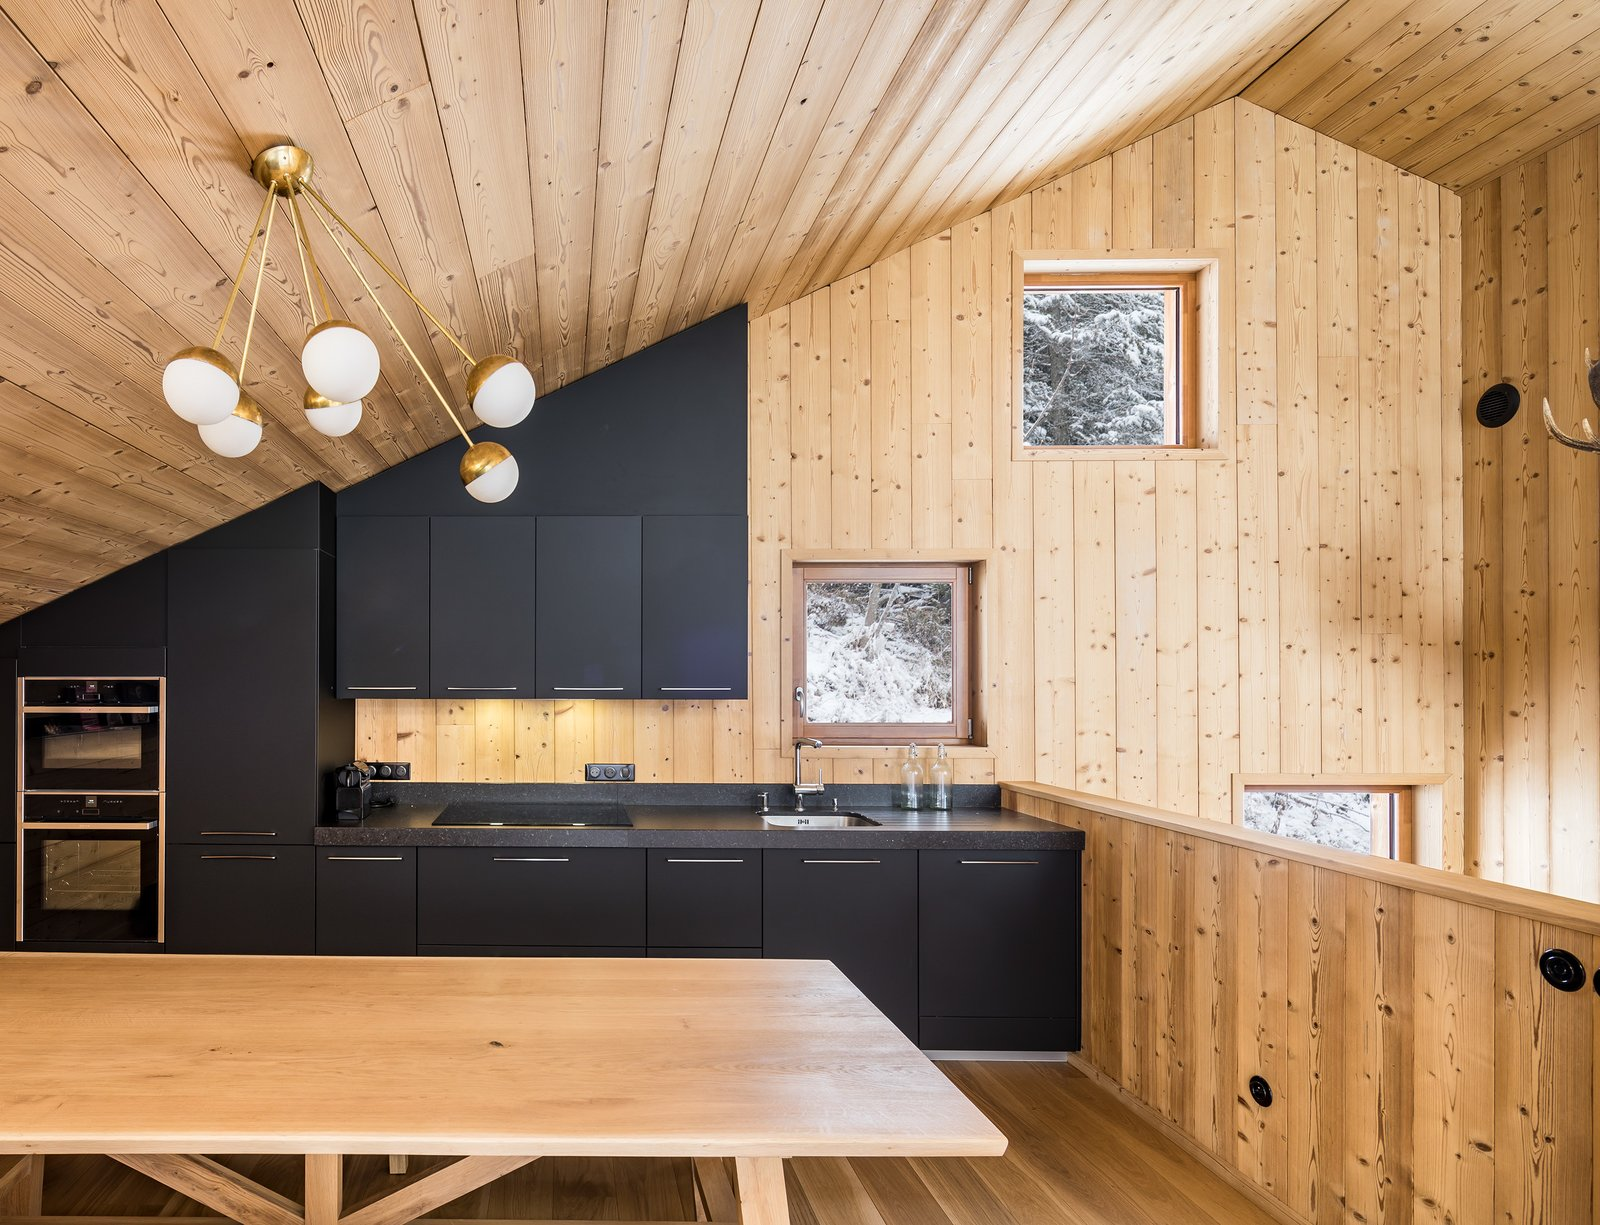 Tagged: Kitchen, Laminate Cabinet, Ceiling Lighting, Microwave, Light Hardwood Floor, Granite Counter, Cooktops, and Wall Oven. Mountain House by studio razavi architecture